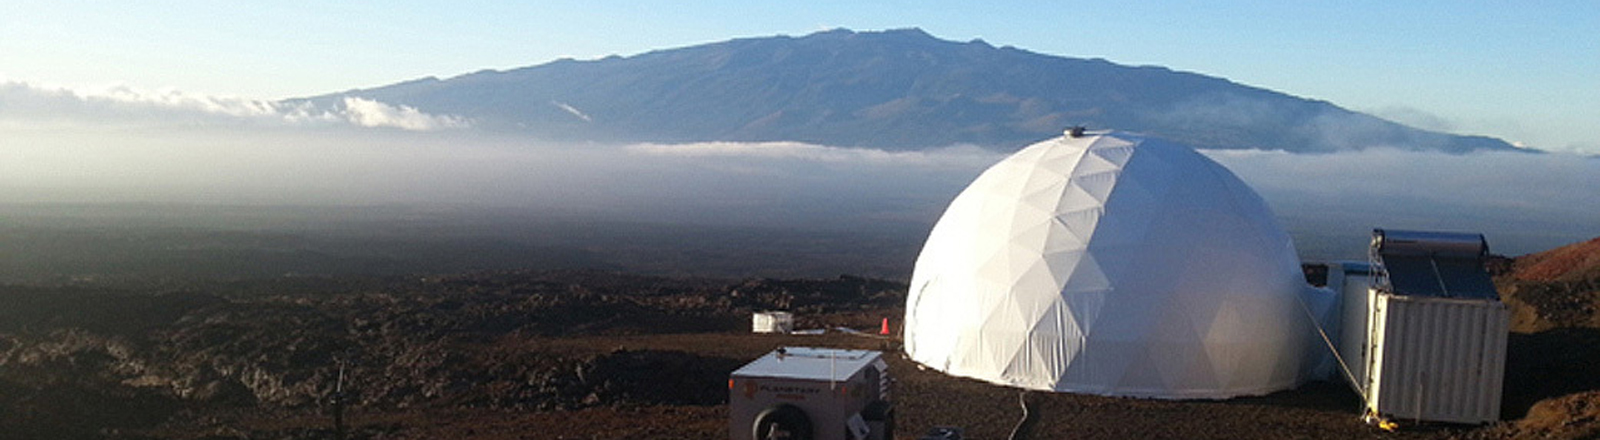 Mars-Experiment auf Hawaii.